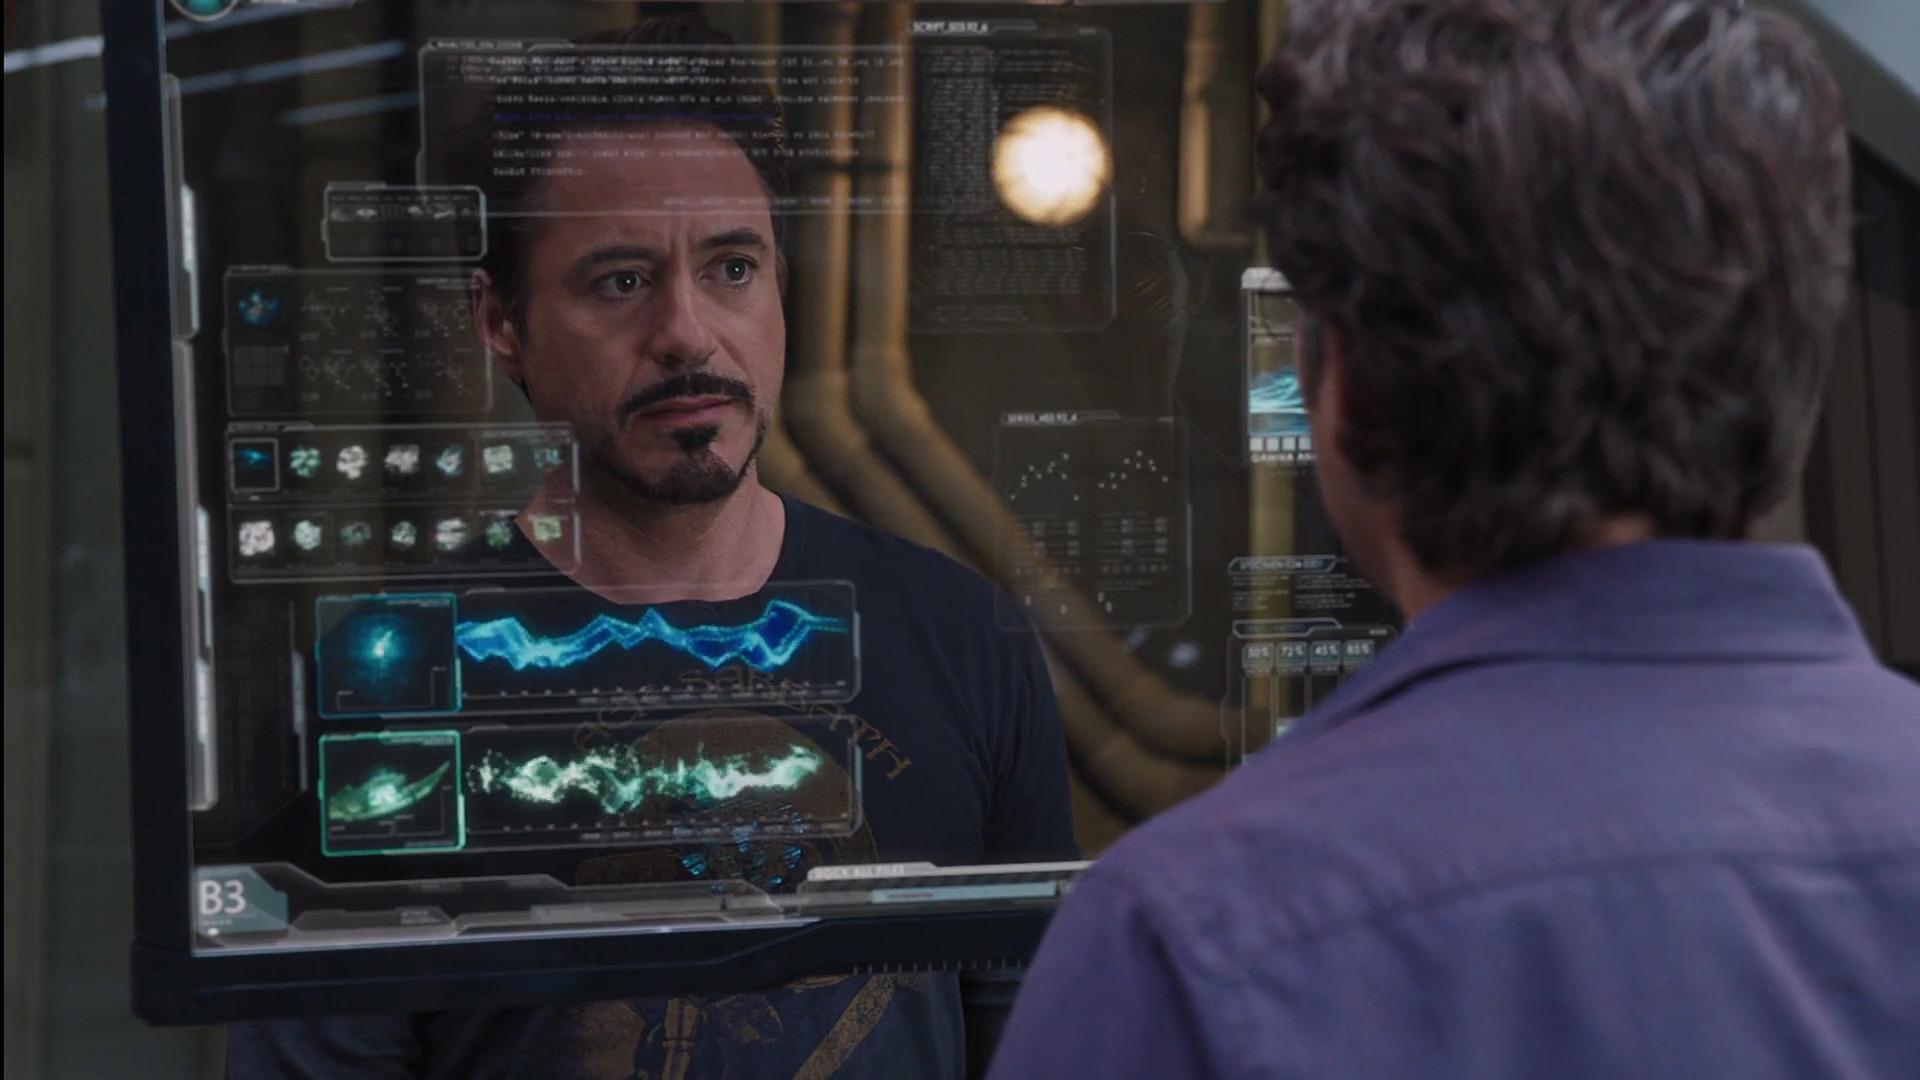 http://www.caps.media/201/2-avengers/full/avengers-movie-screencaps.com-7071.jpg